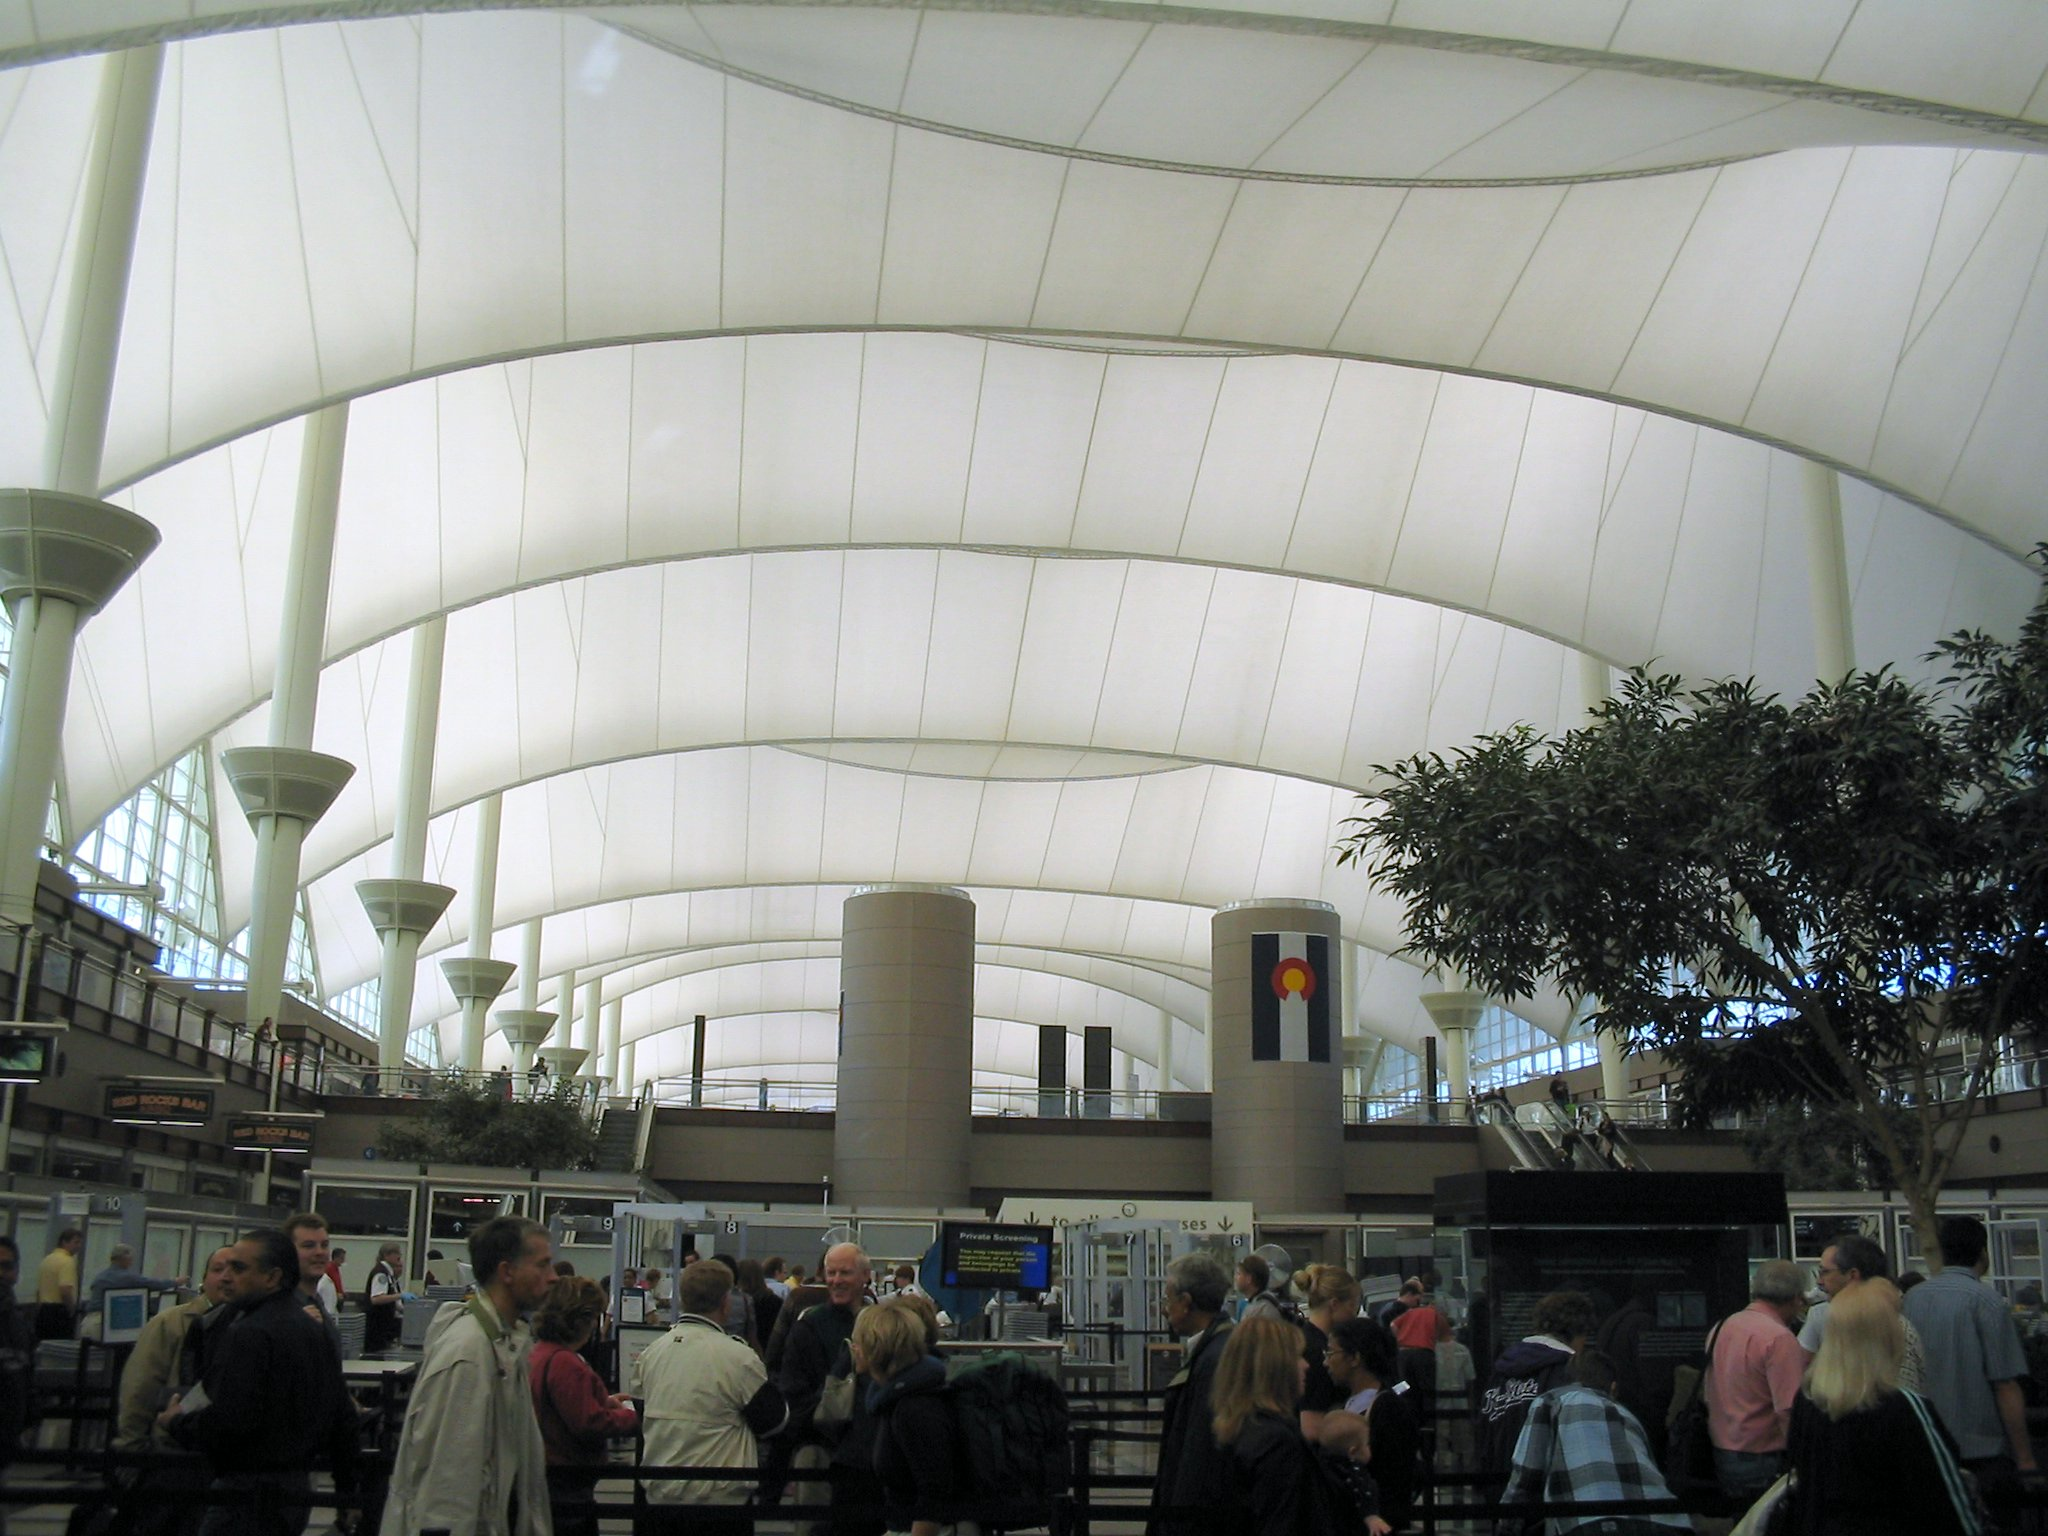 Lovely File:Denver International Airport, From Security Line